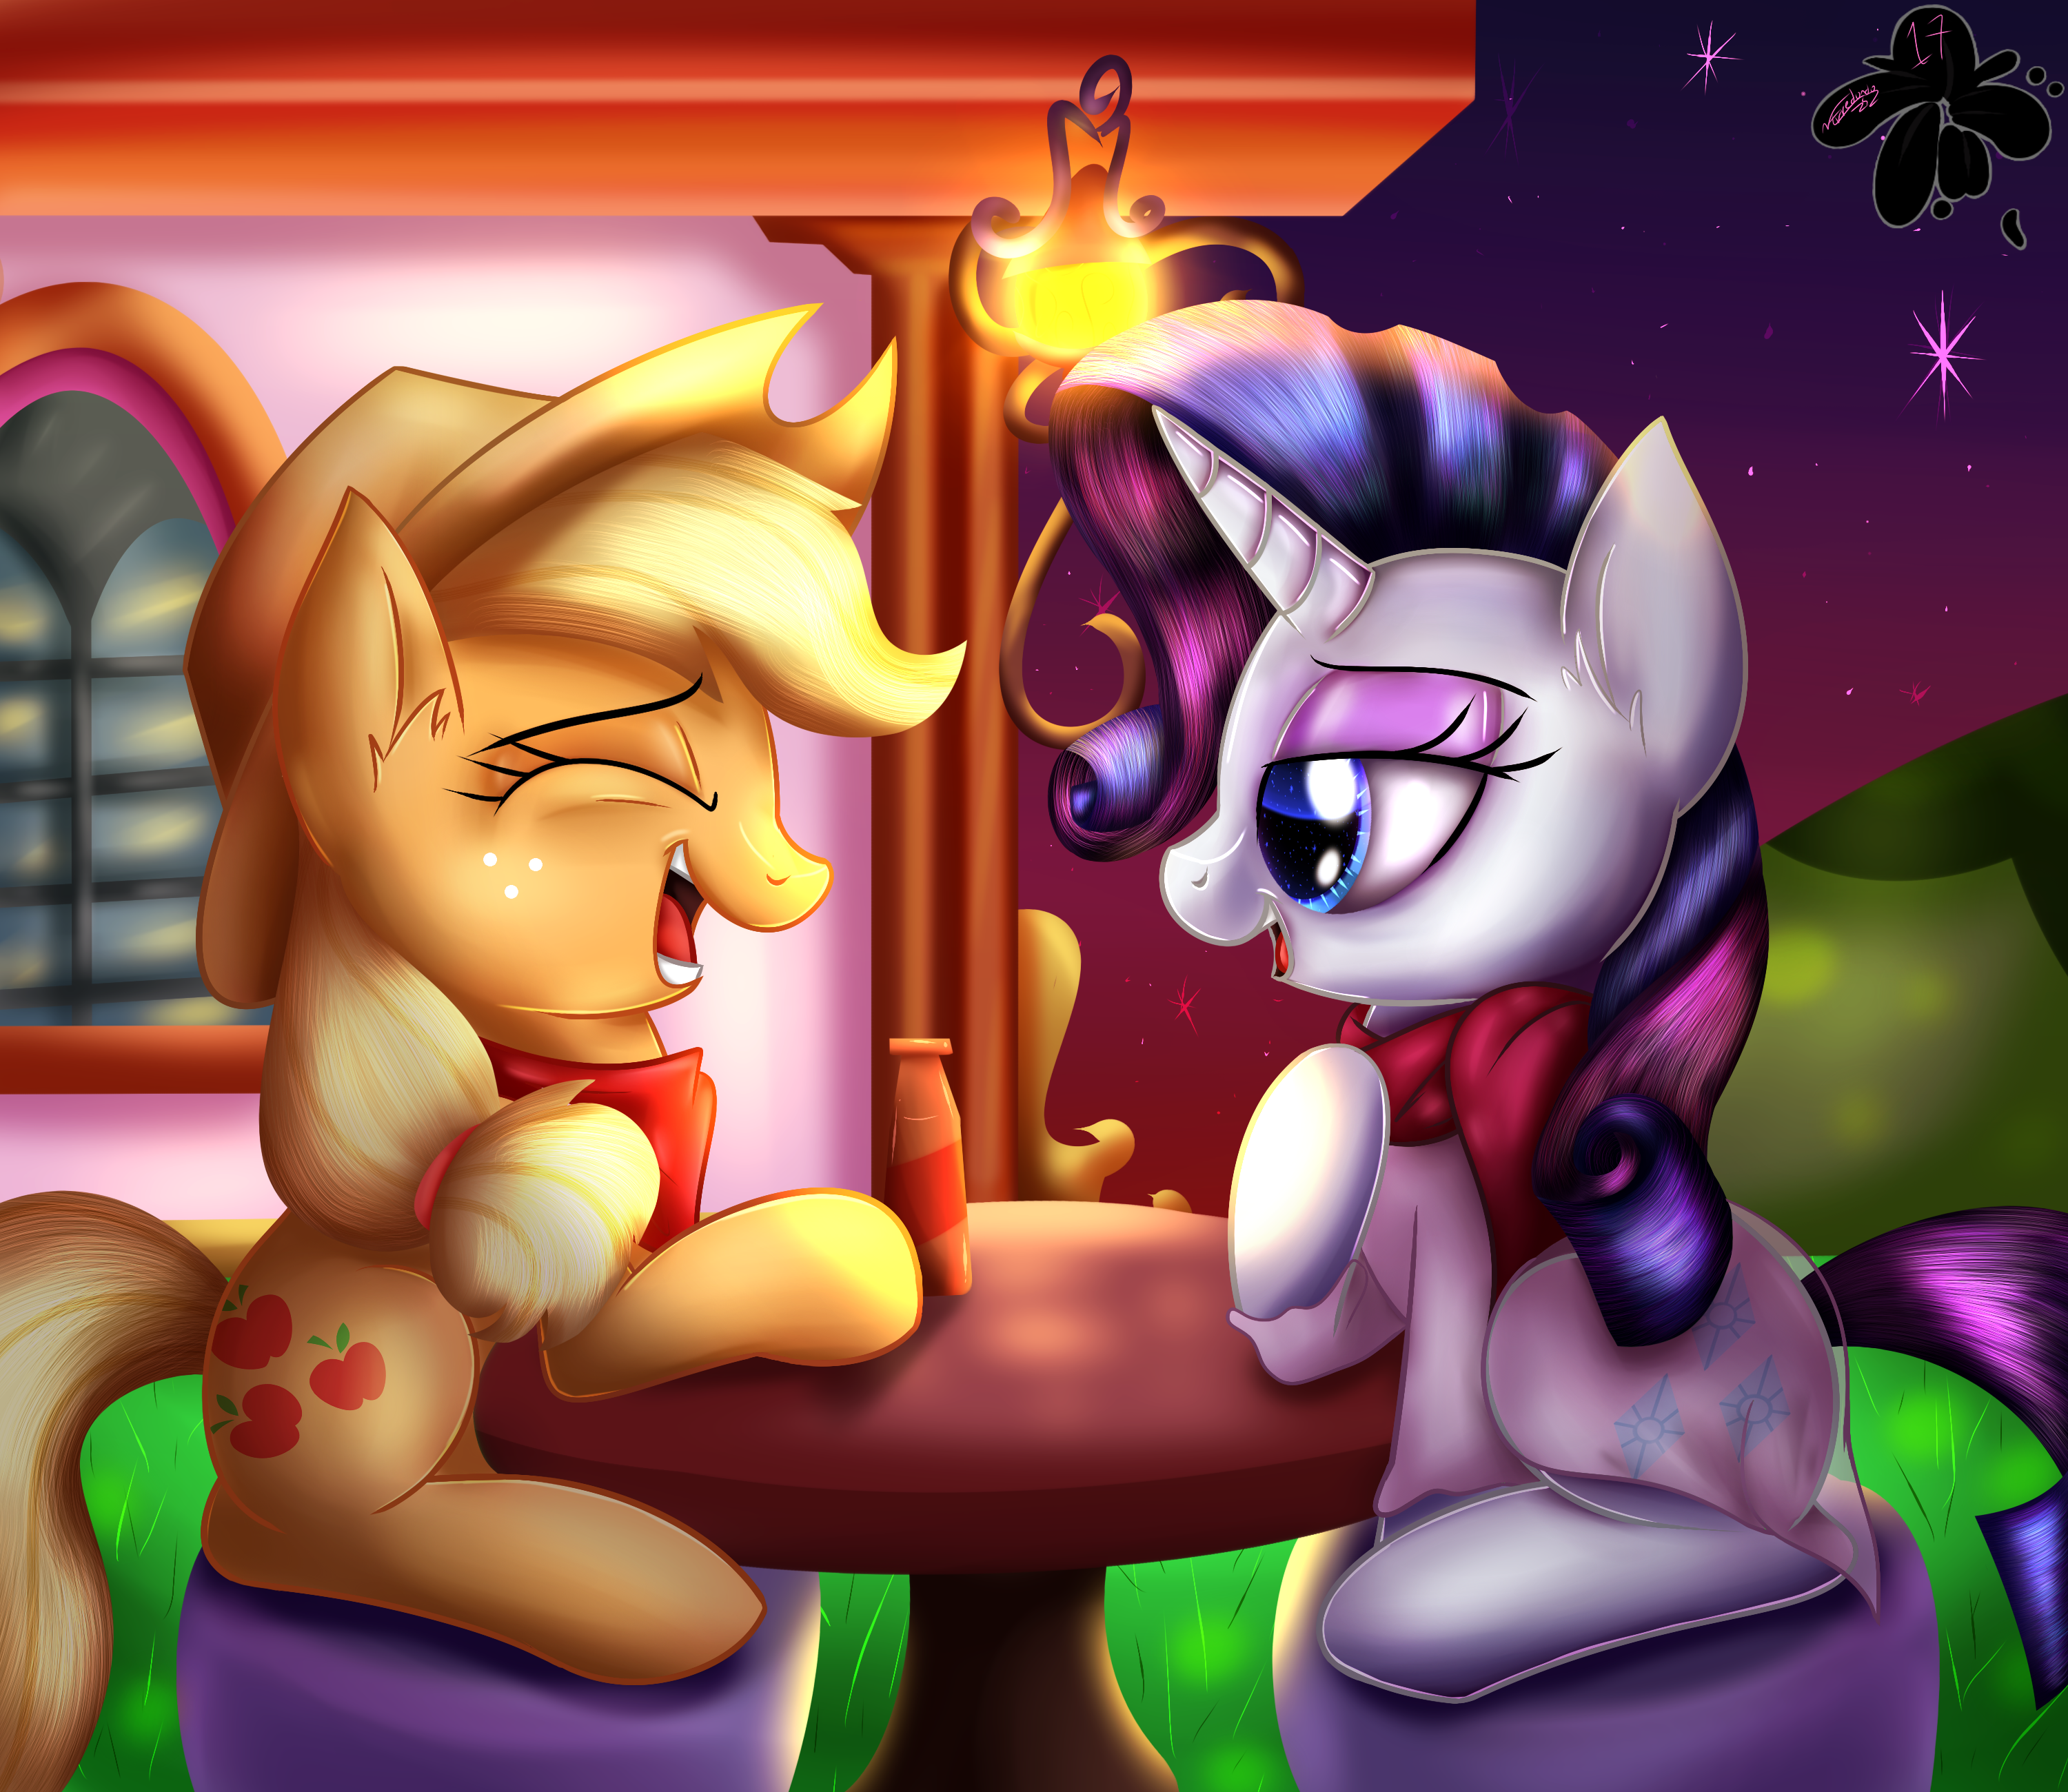 first_summer_night_by_katakiuchi4u-dbdm5